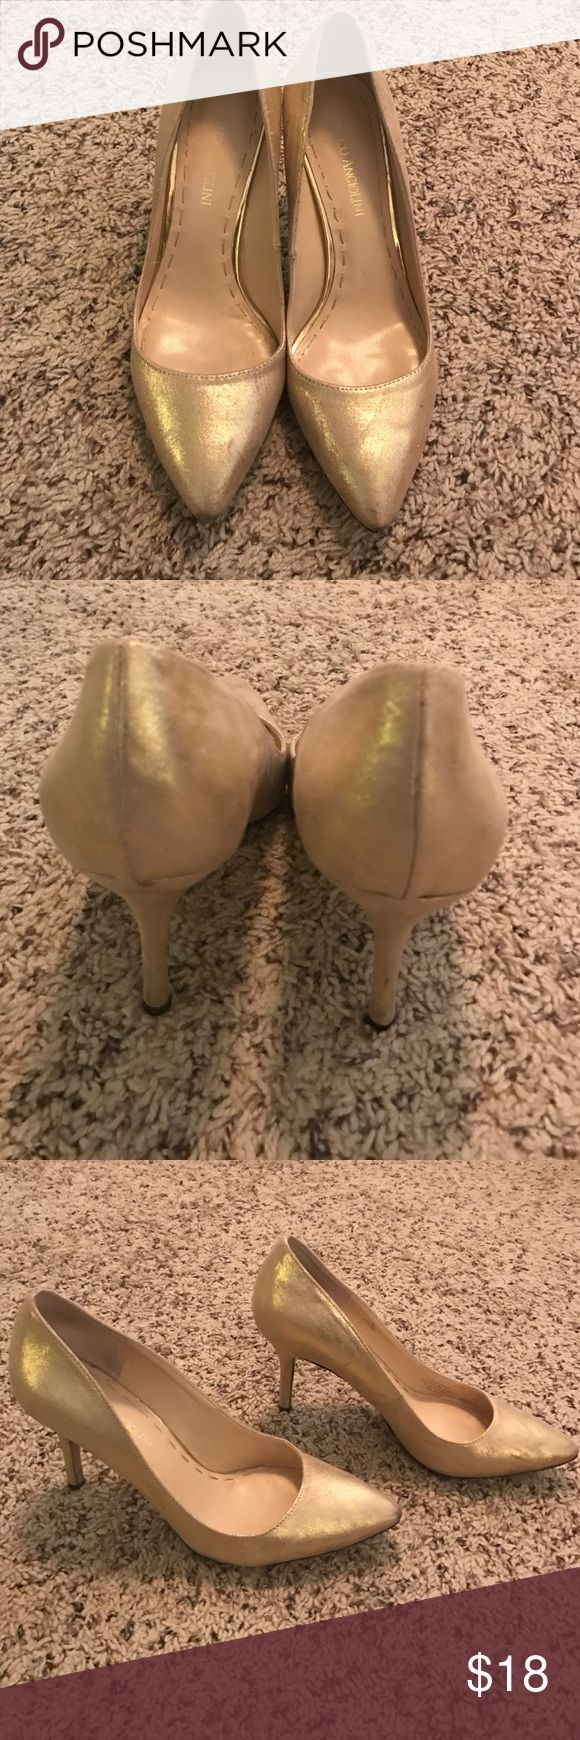 Gold pumps Soft gold metallic pumps Enzo Angiolini Shoes Heels